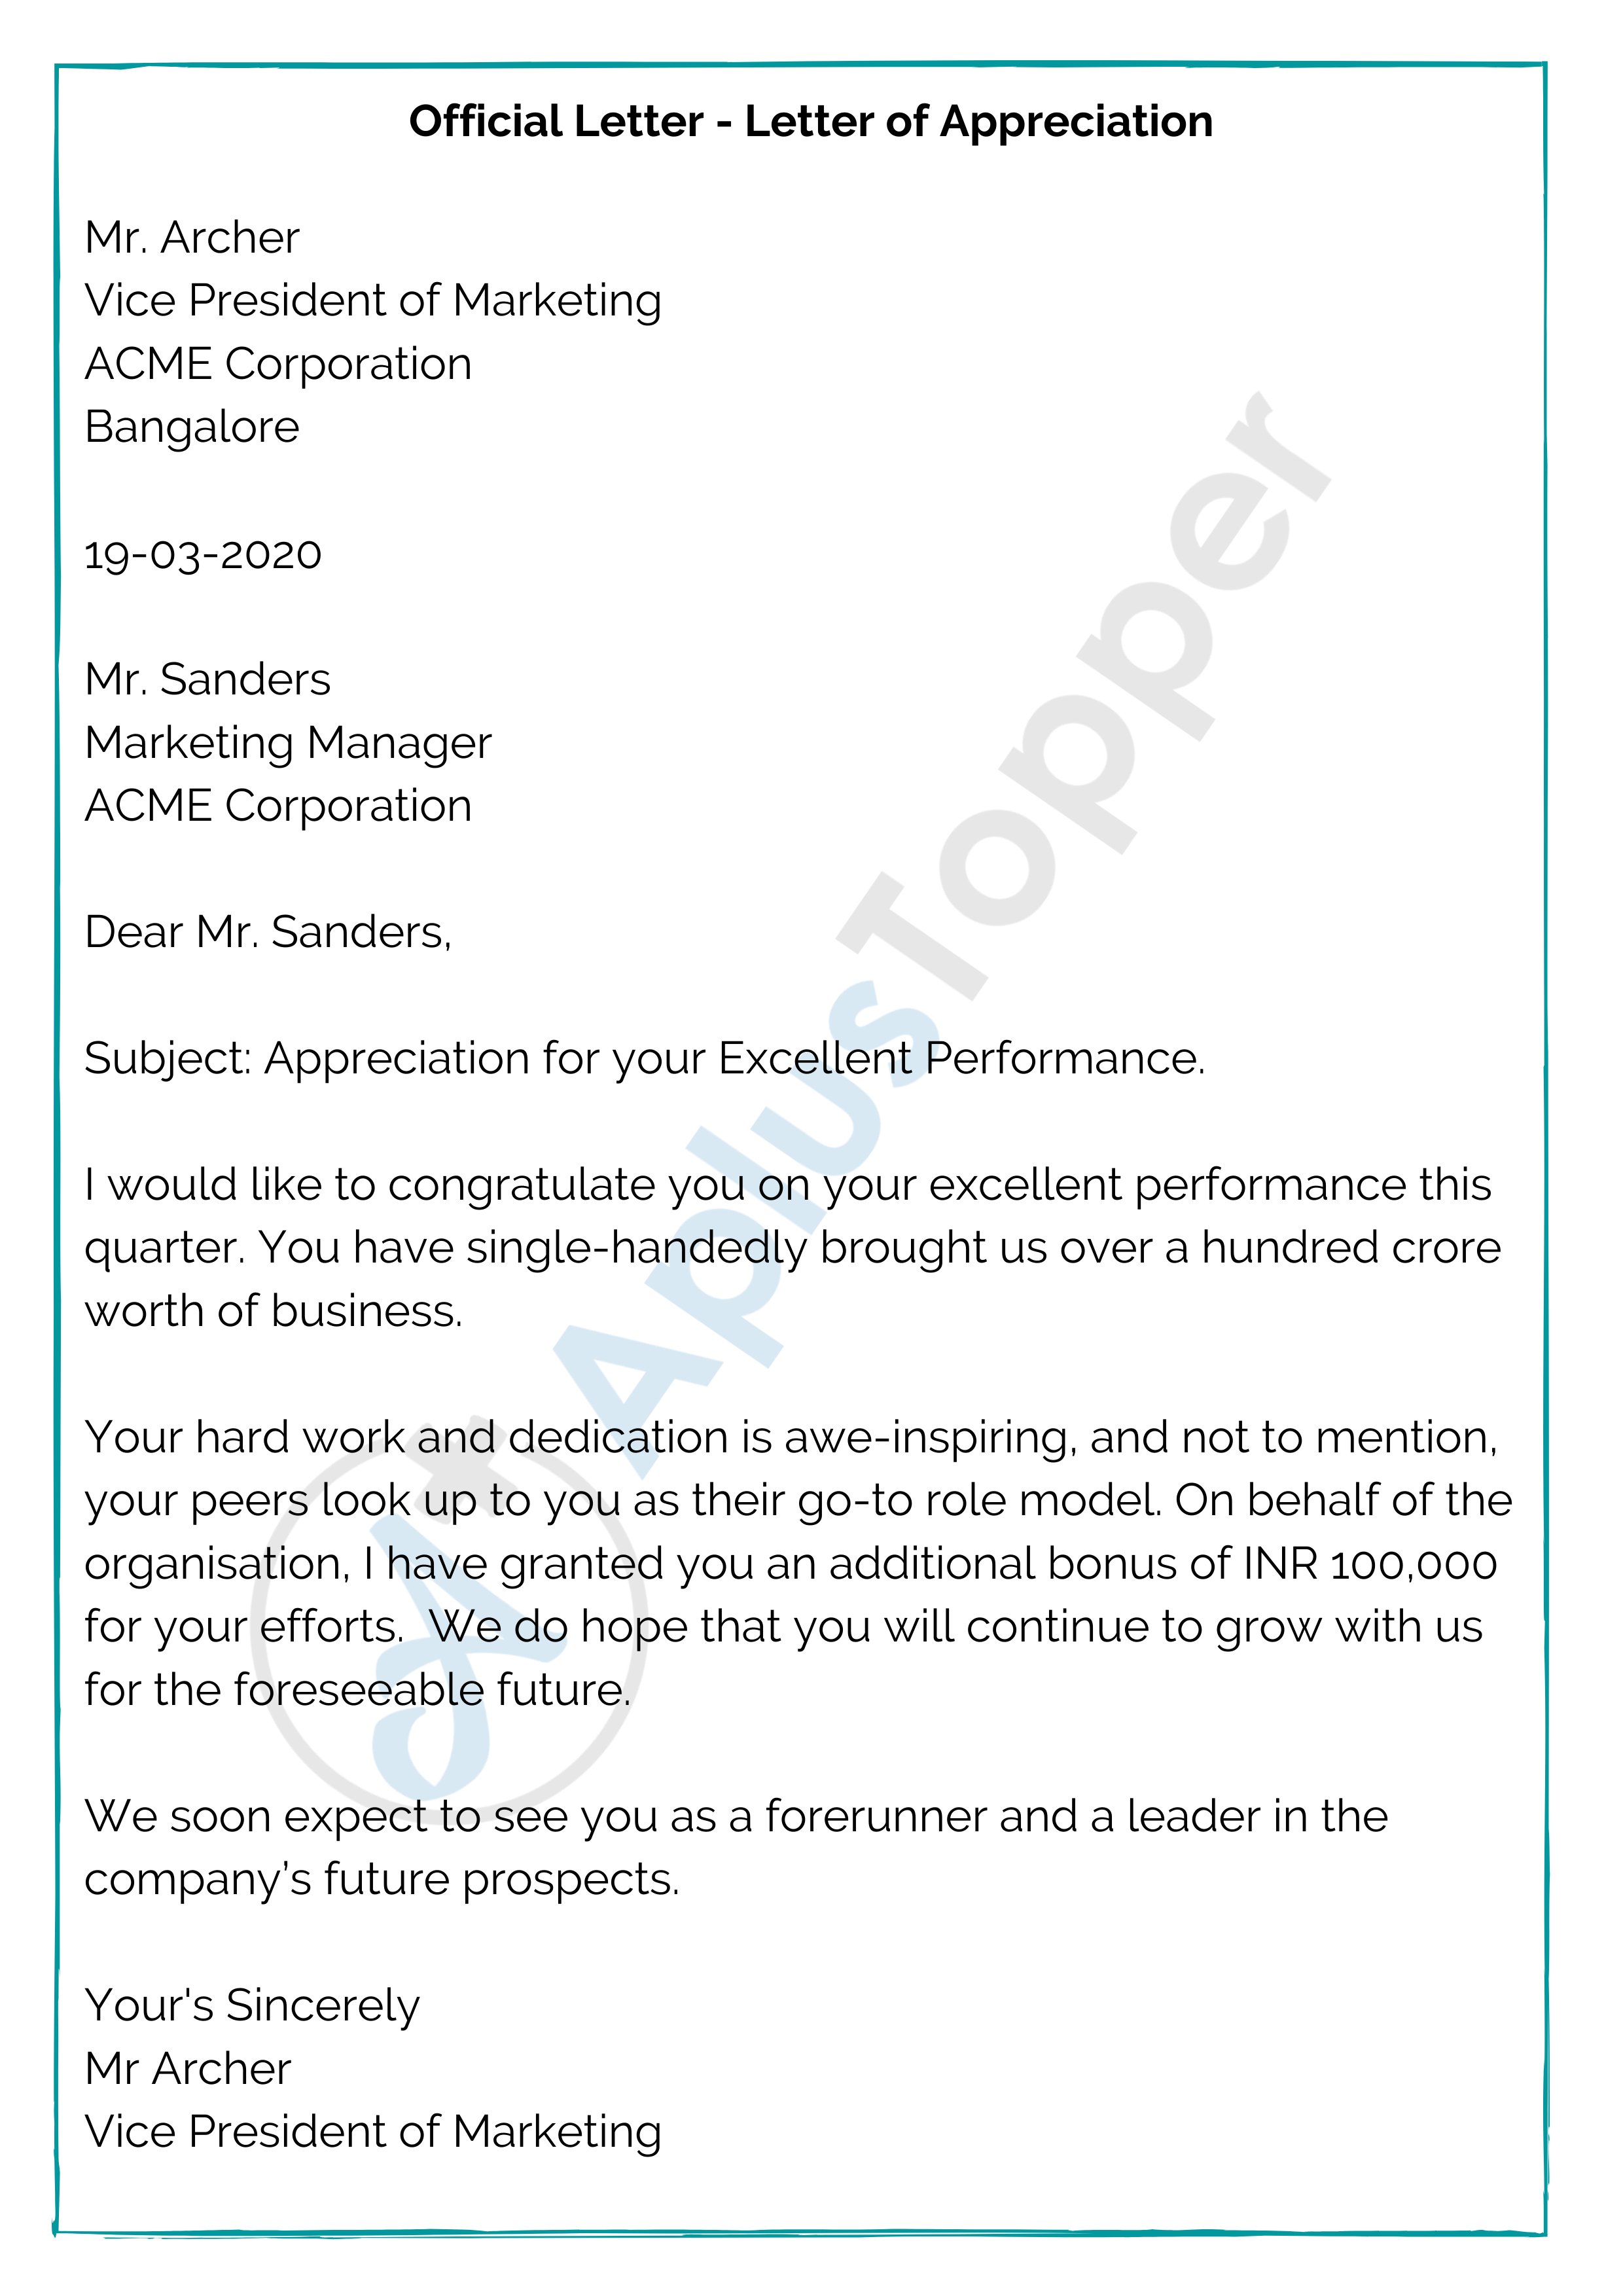 Official Letter - Letter of Appreciation